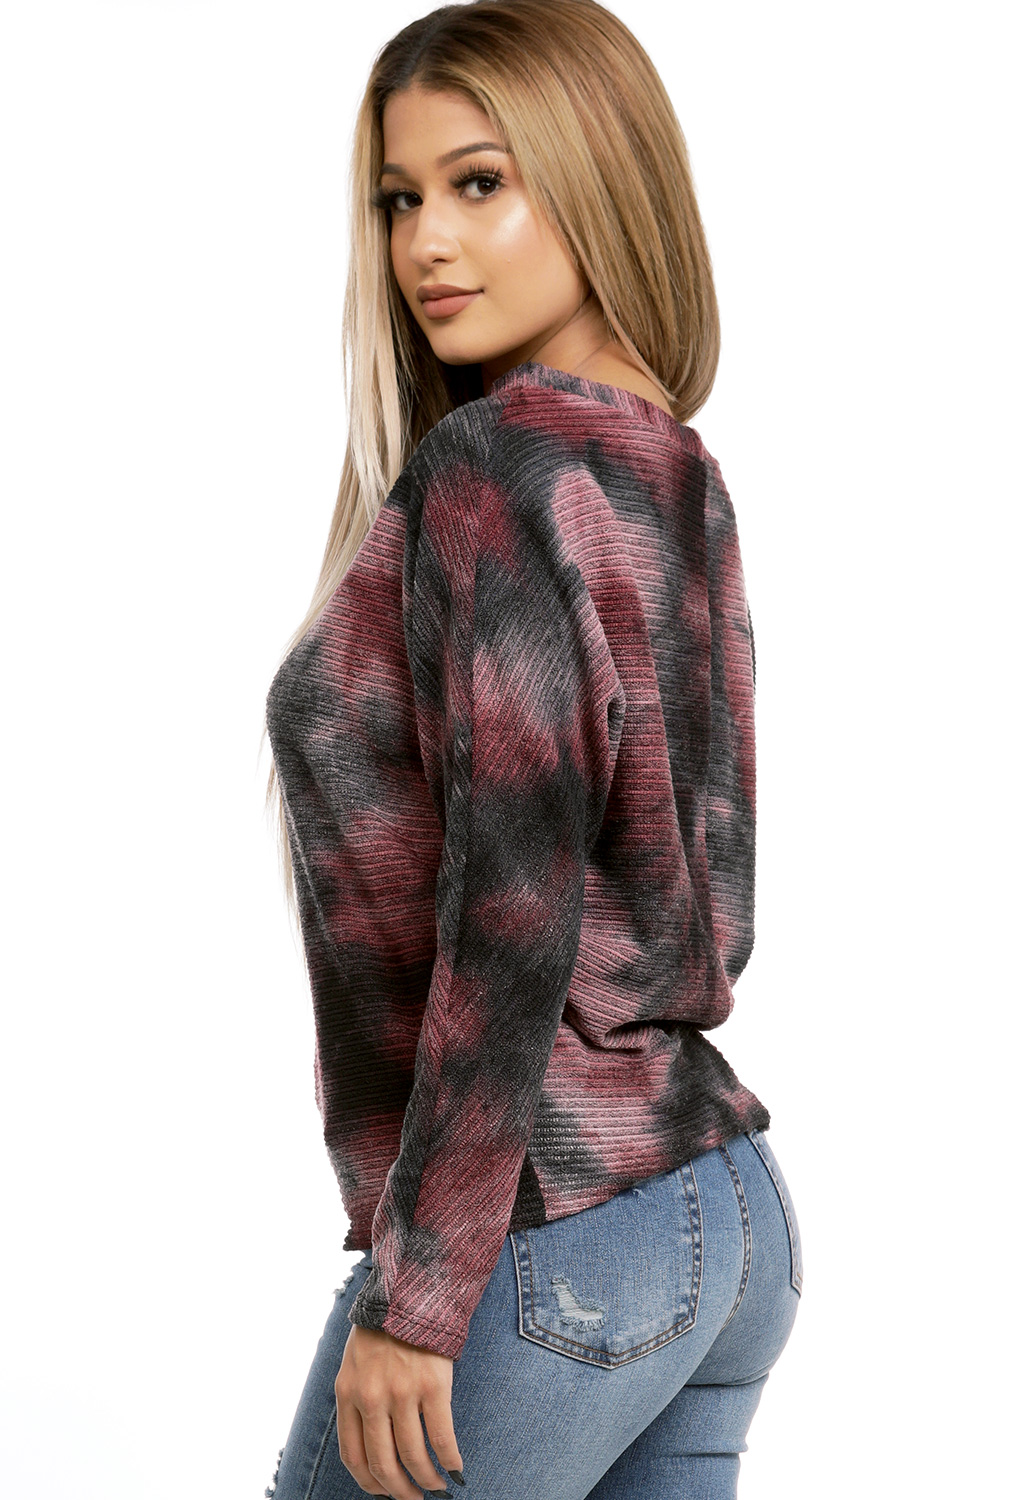 Tye Dye Knit Sweater